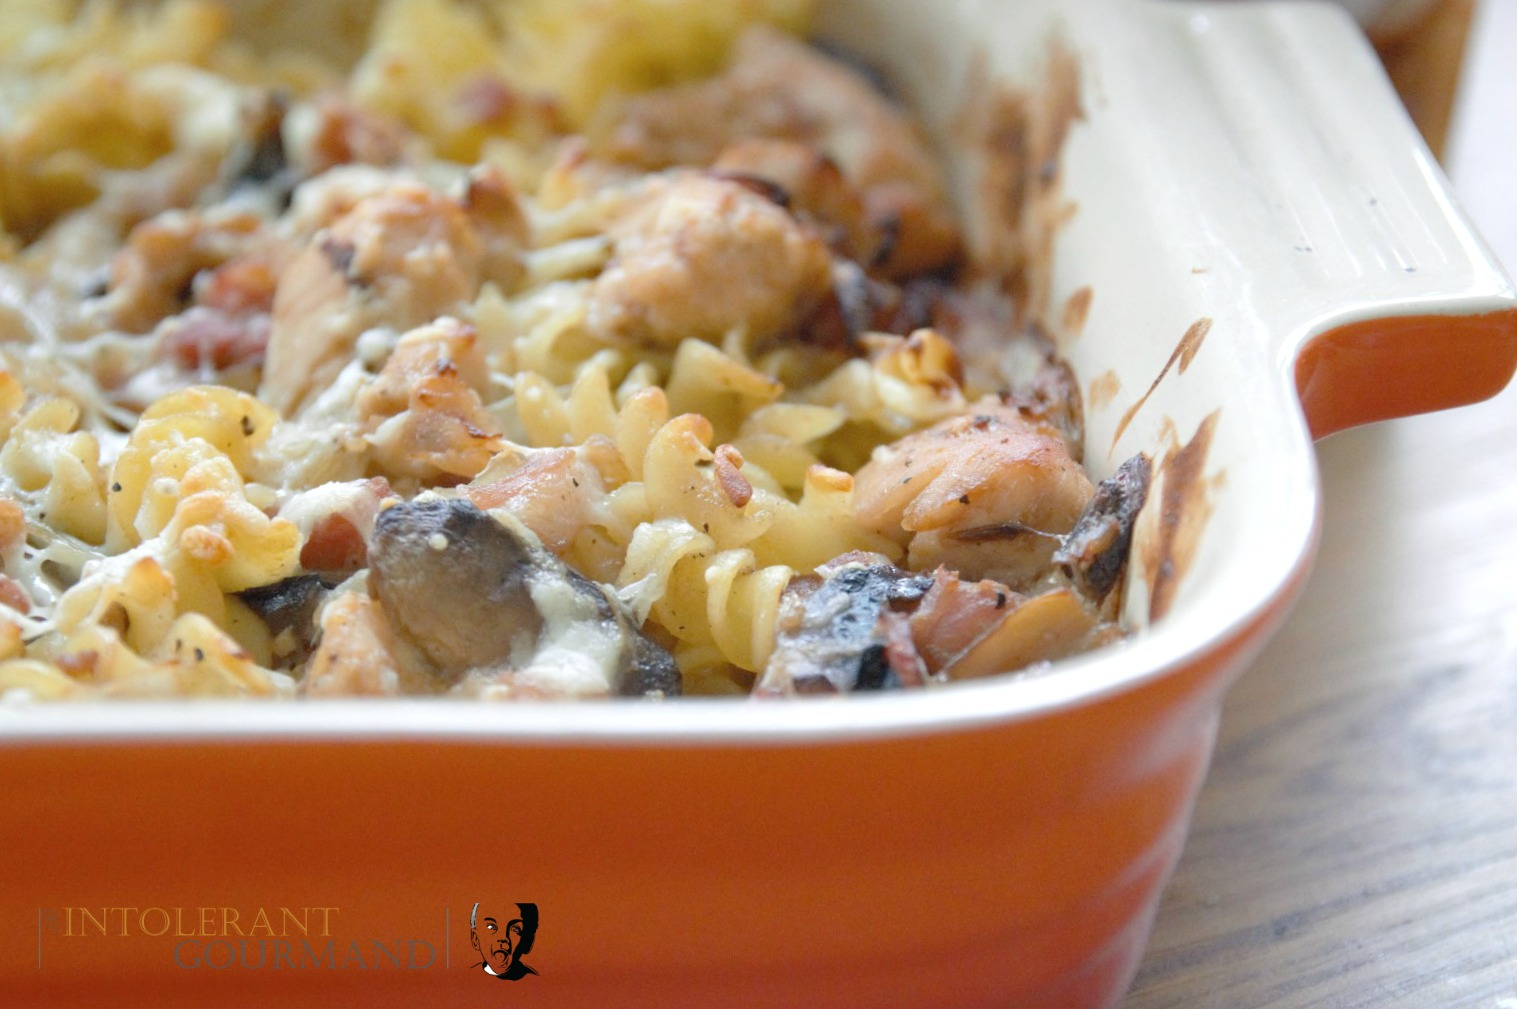 Chicken Mushroom Pasta Bake - made as part of our IBS Awareness Month series. A gluten-free dish, using every day ingredients and packed full of flavour thanks to a2 Milk and Schwartz products! www.intolerantgourmand.com